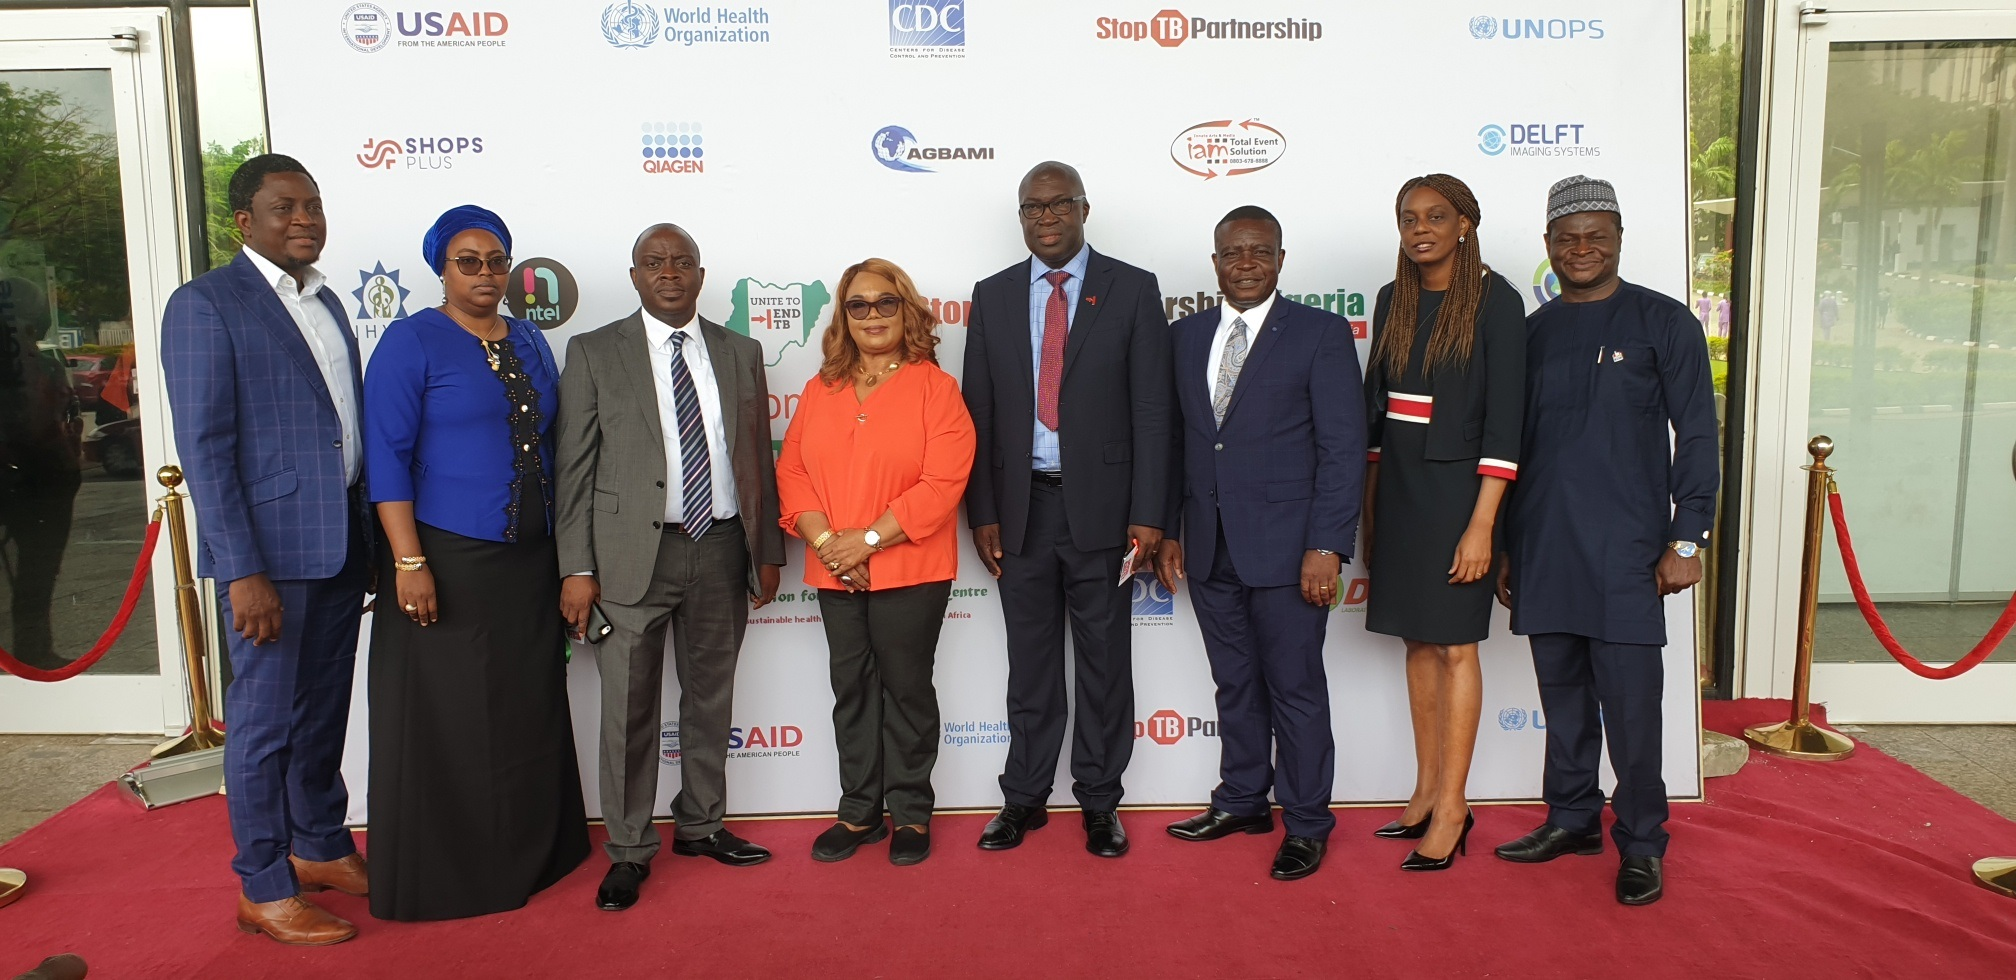 Stakeholders applaud Chevron, Agbami parties at TB National Conference